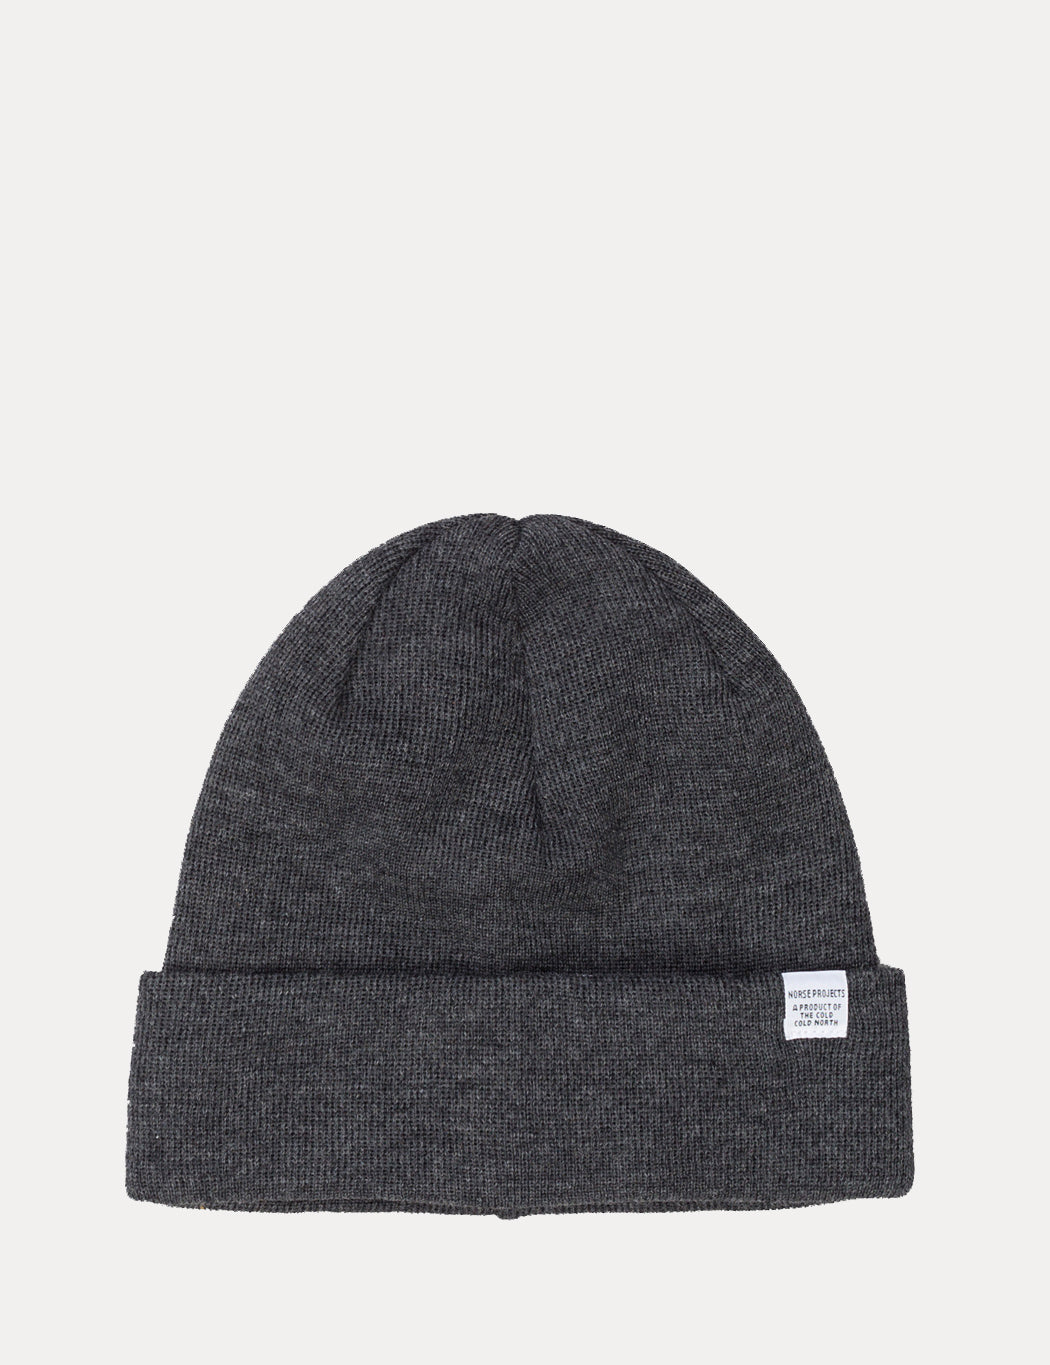 Norse Projects Top Beanie Hat - Charcoal Grey Melange | URBAN EXCESS.